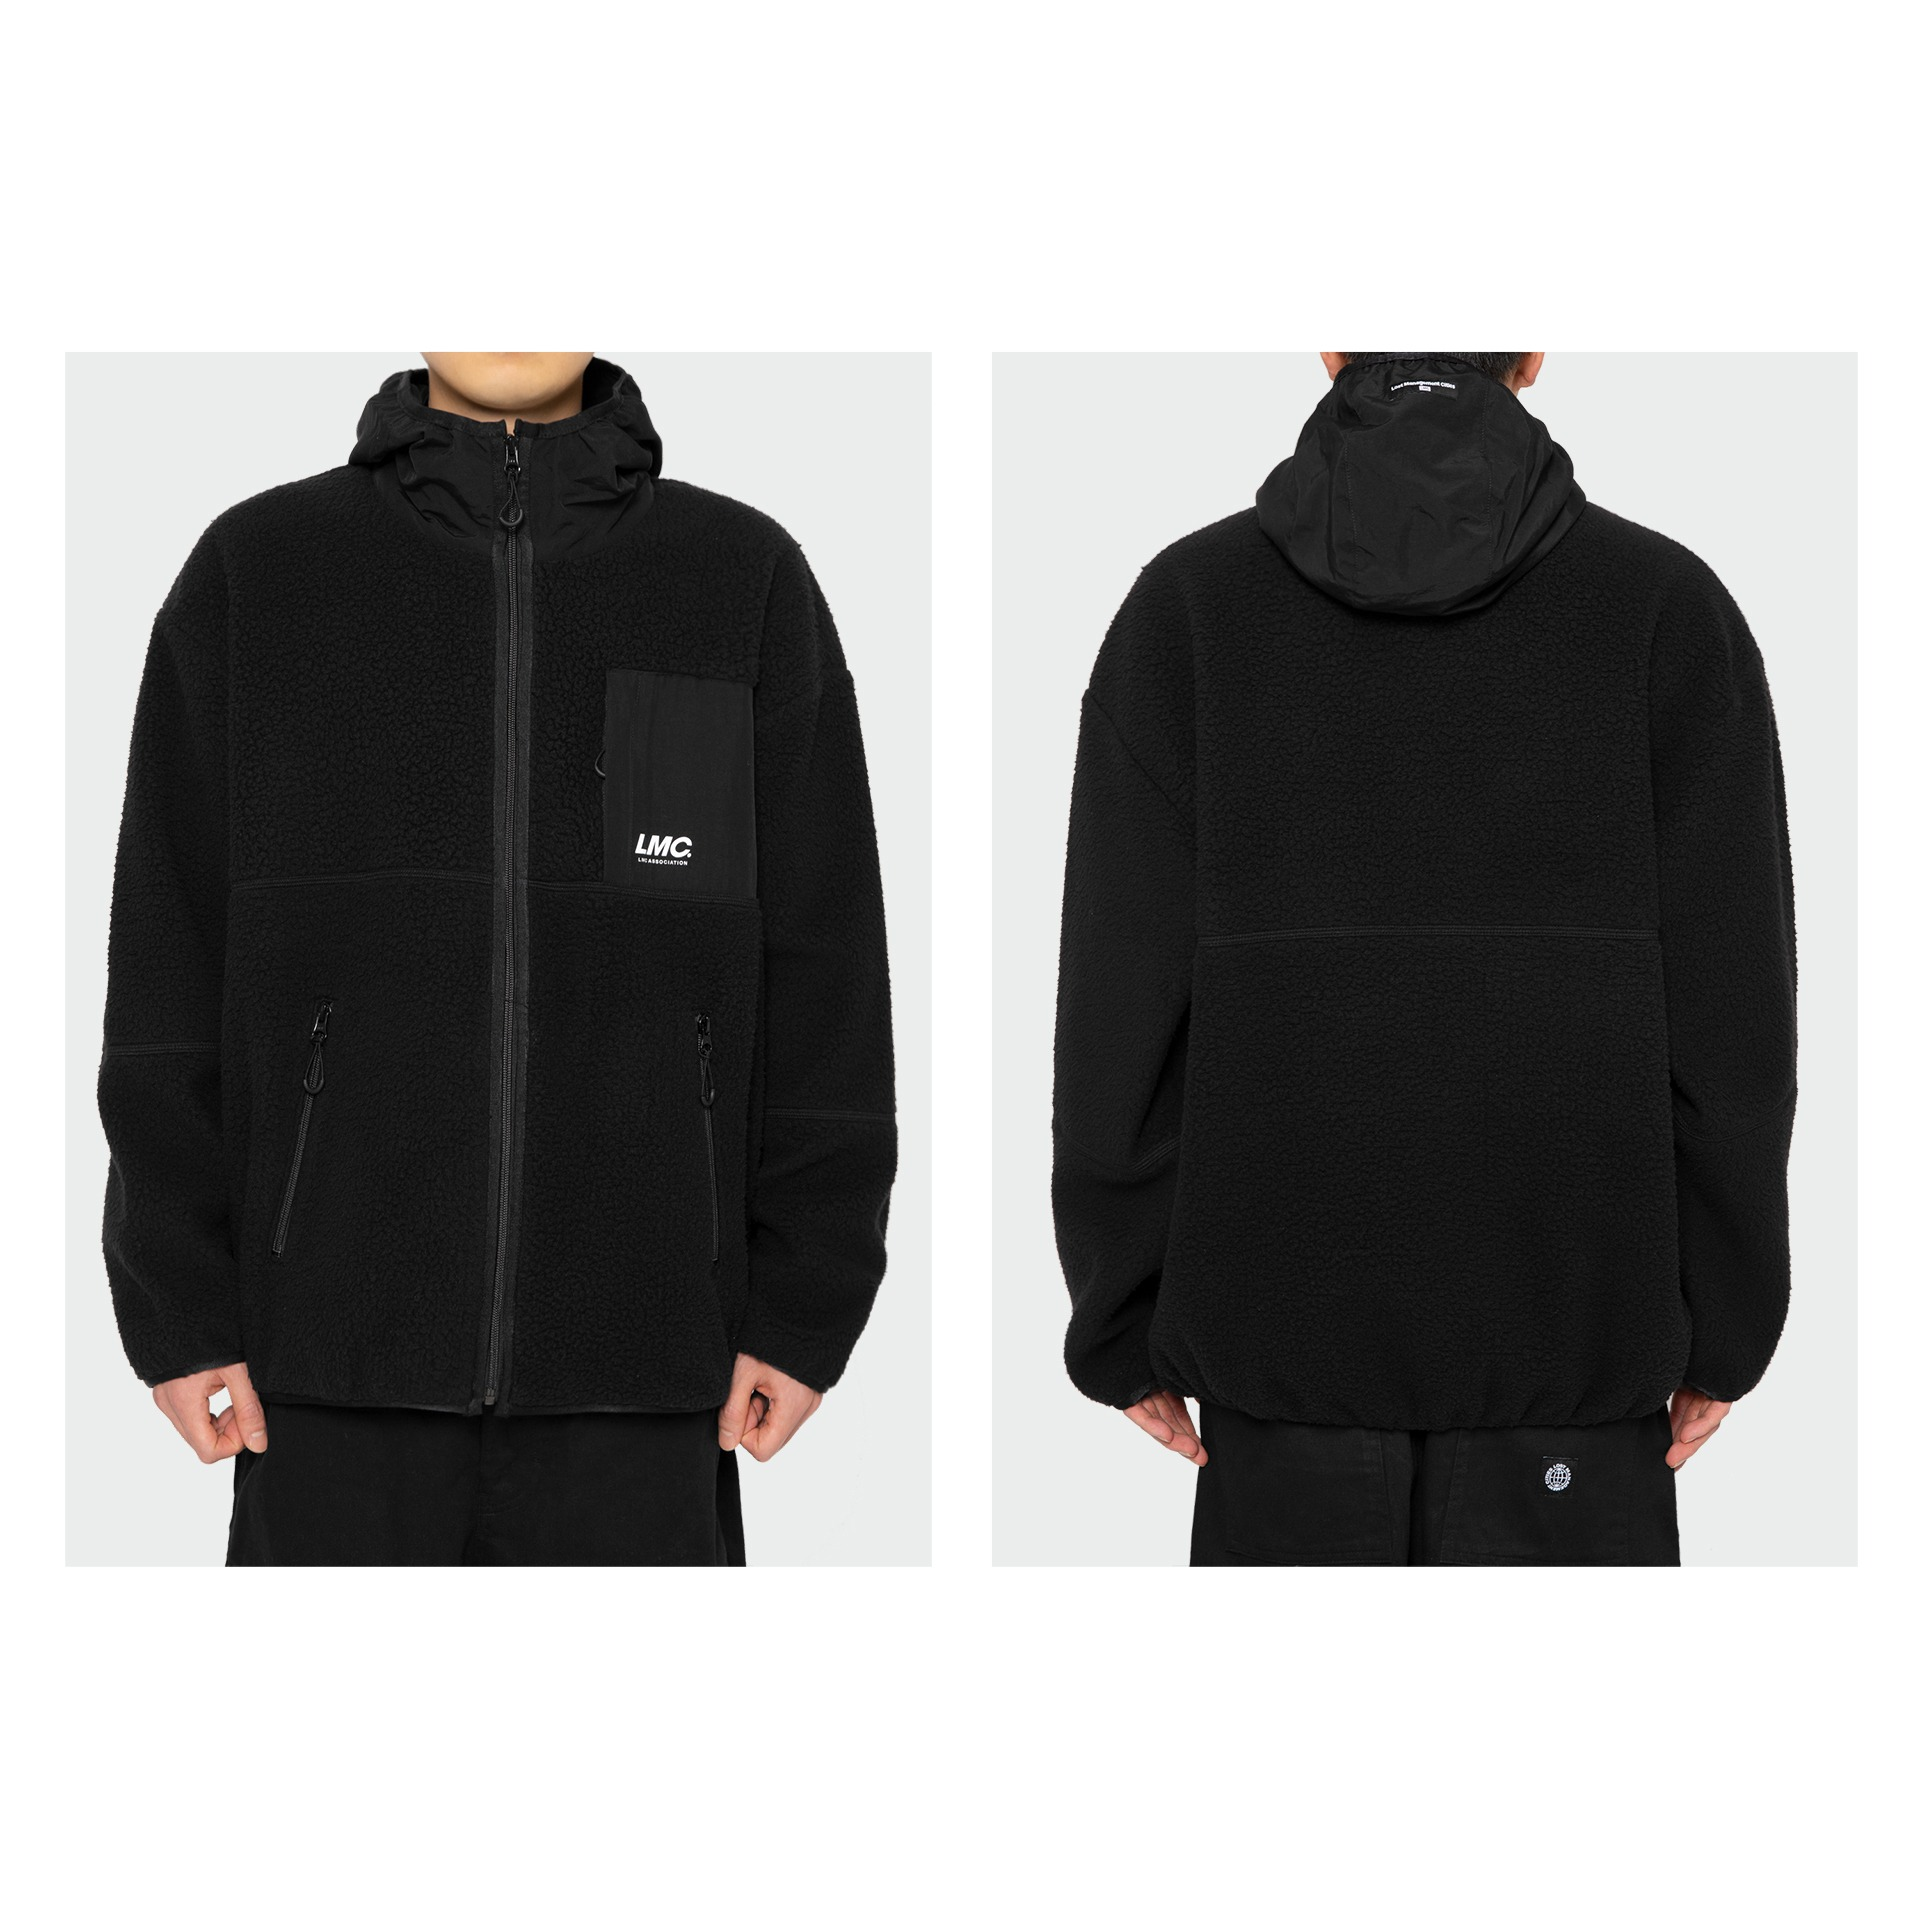 layer-LMC HOODED FLEECE JACKET black♡韓國男裝外套